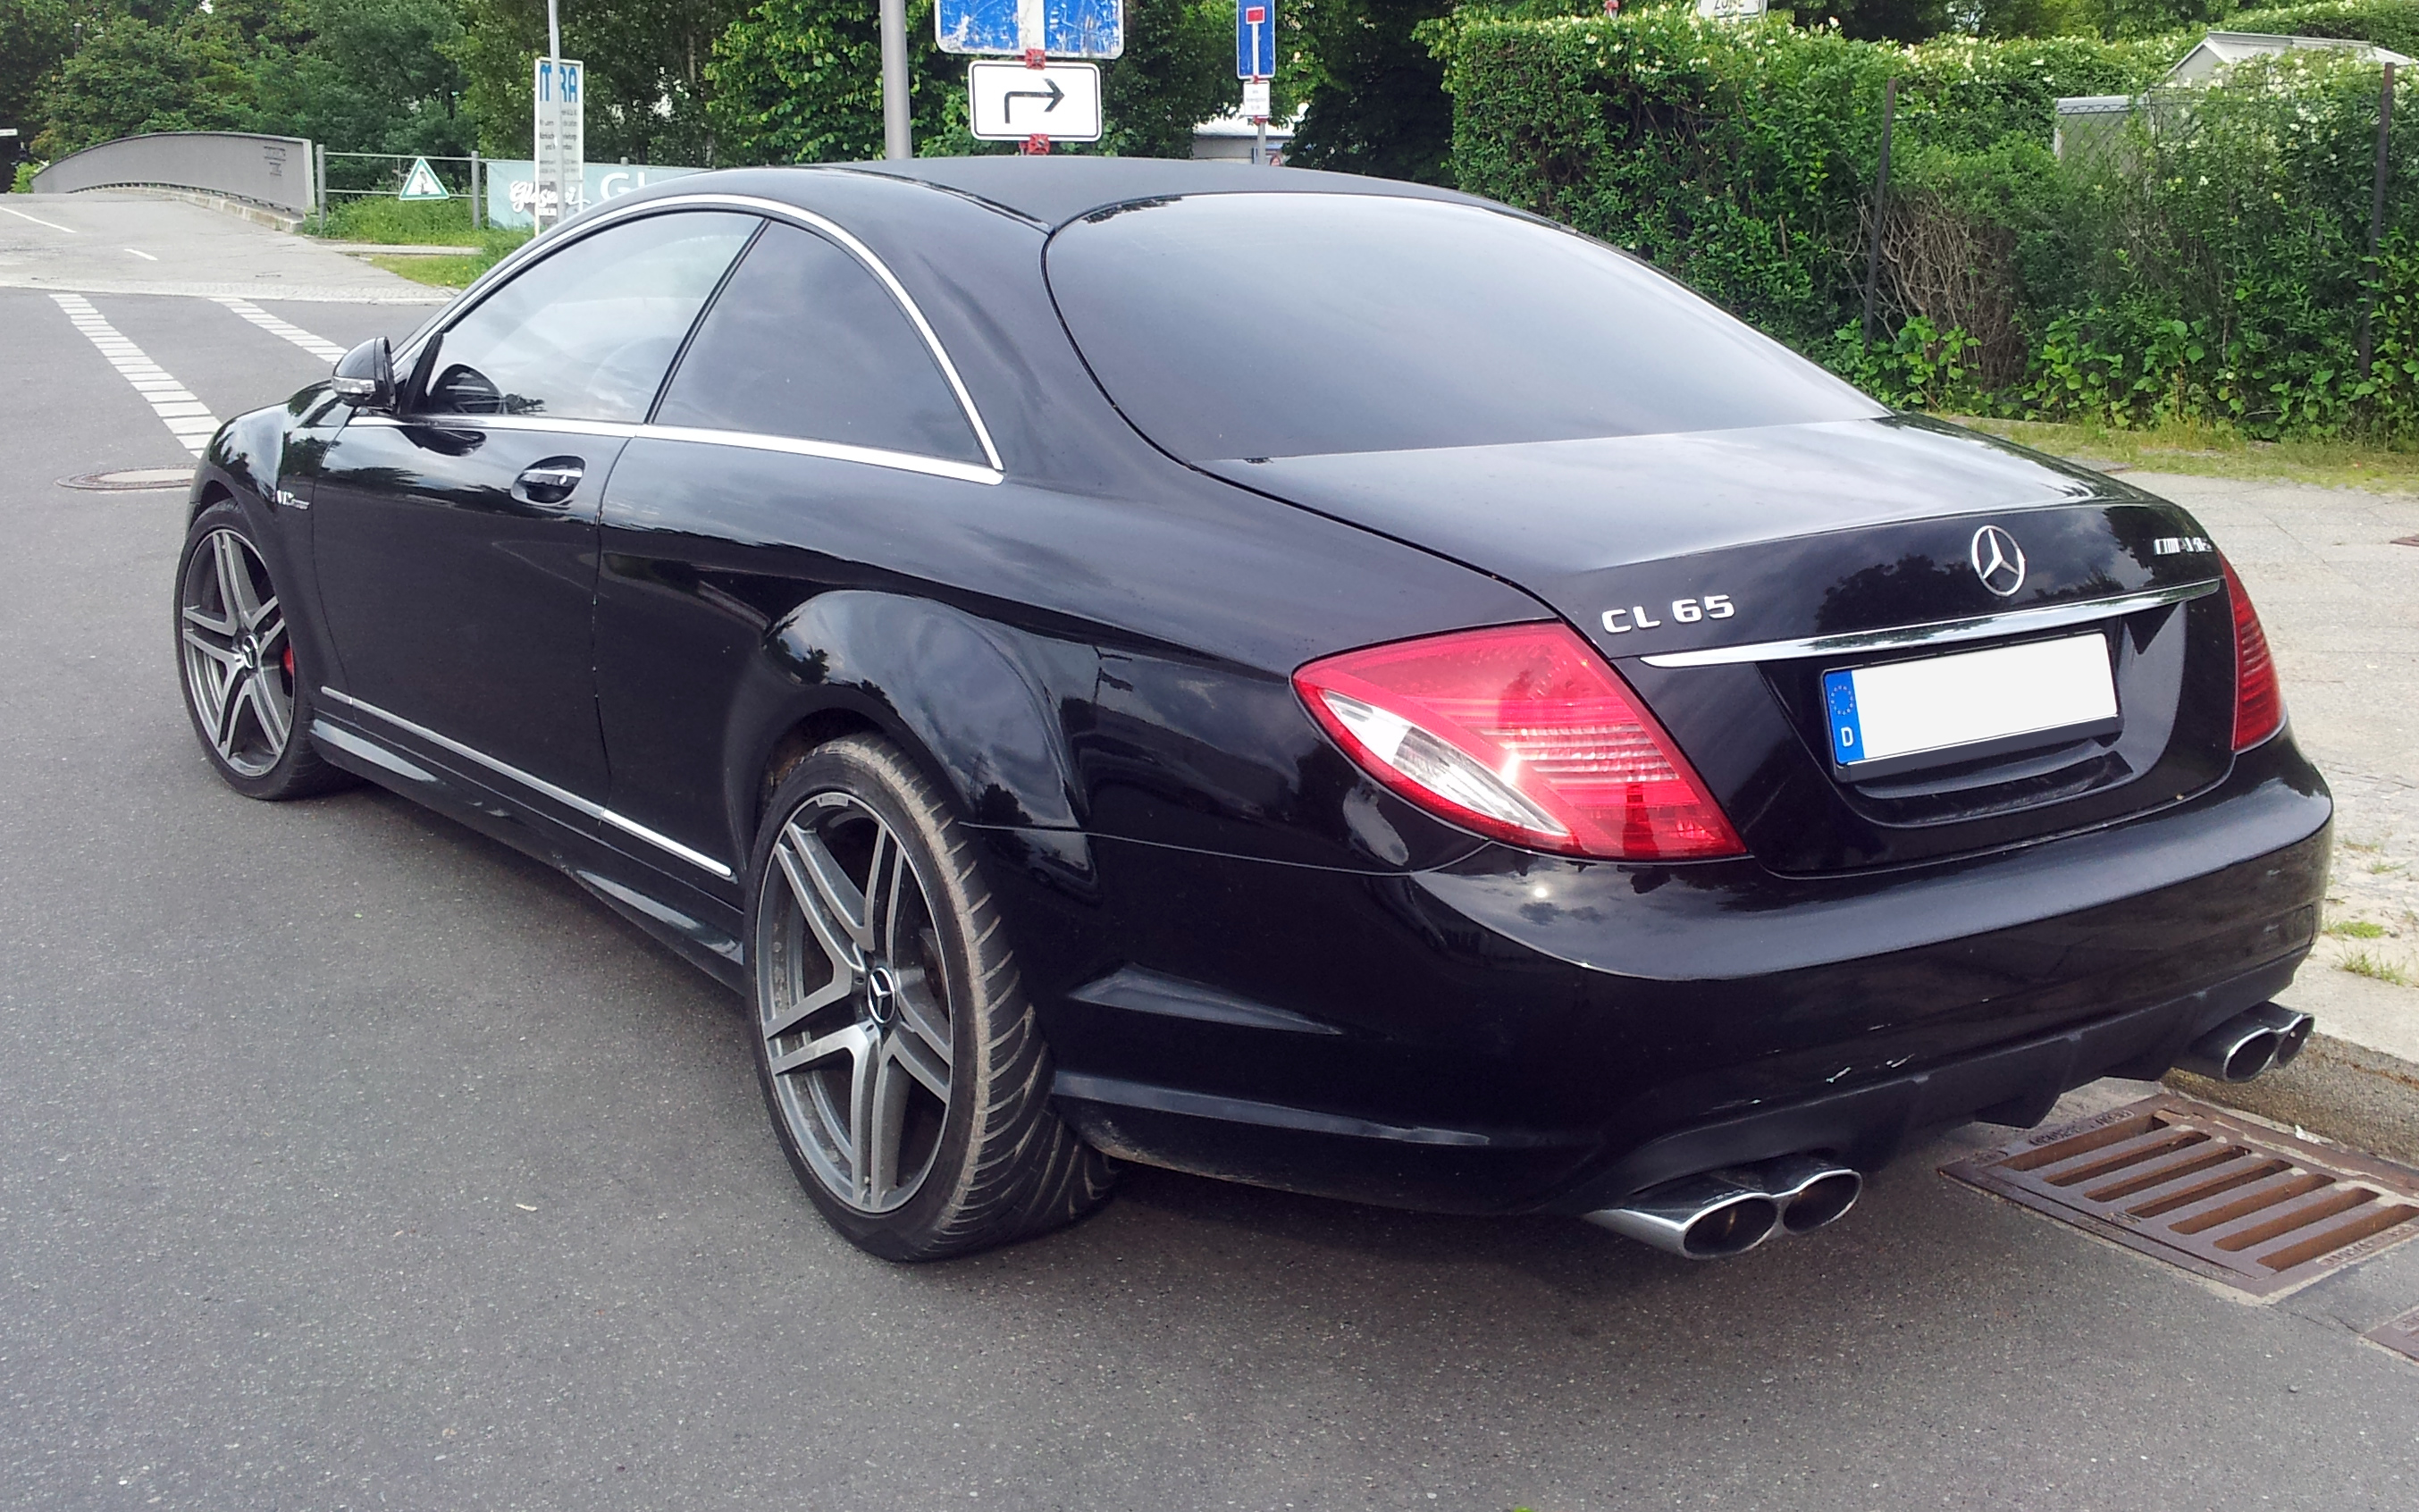 Mercedes benz s class coupe c217 s 65 amg 630 hp mct for Mercedes benz s500 amg